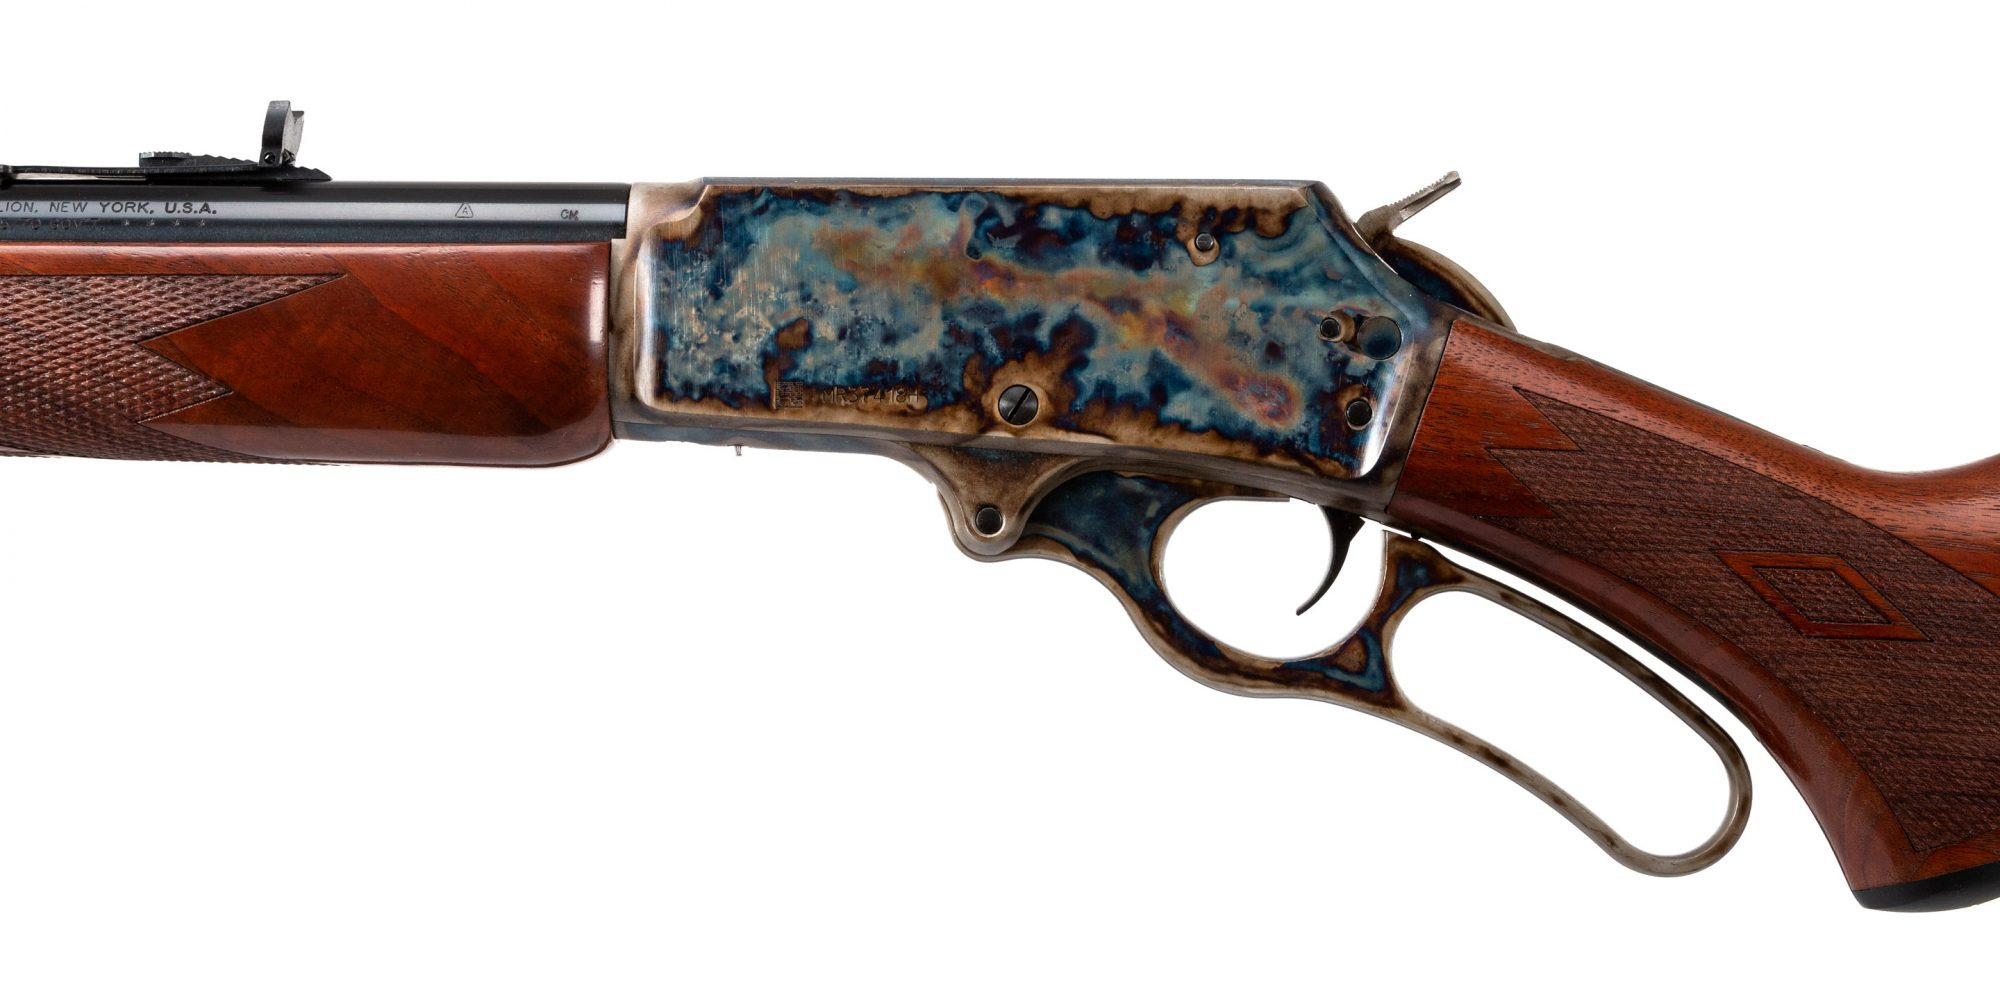 Photo of a Turnbull Finished Marlin 1895, featuring bone charcoal color case hardening